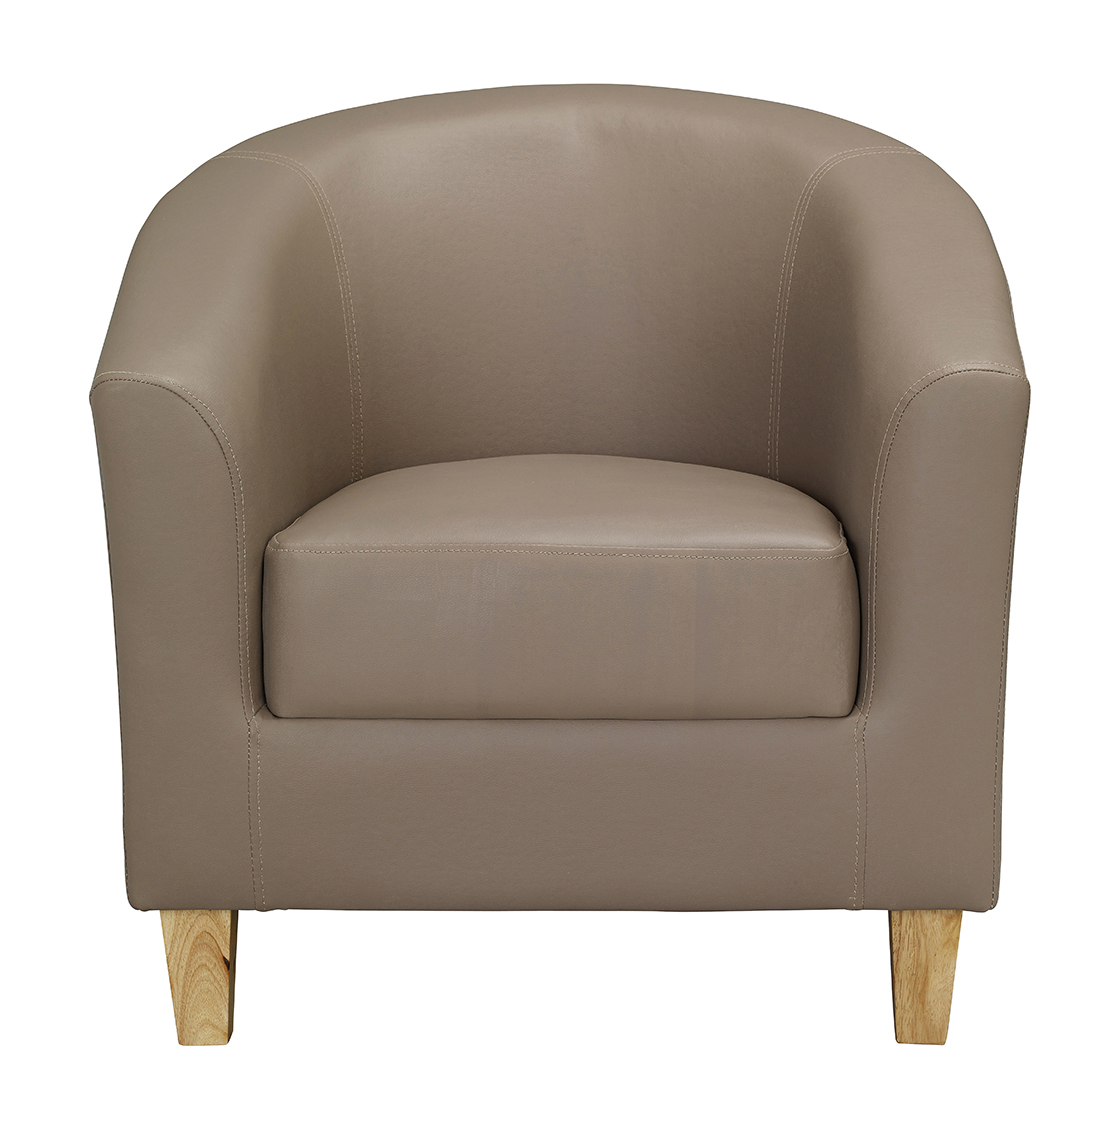 Tanly Chair Taupe